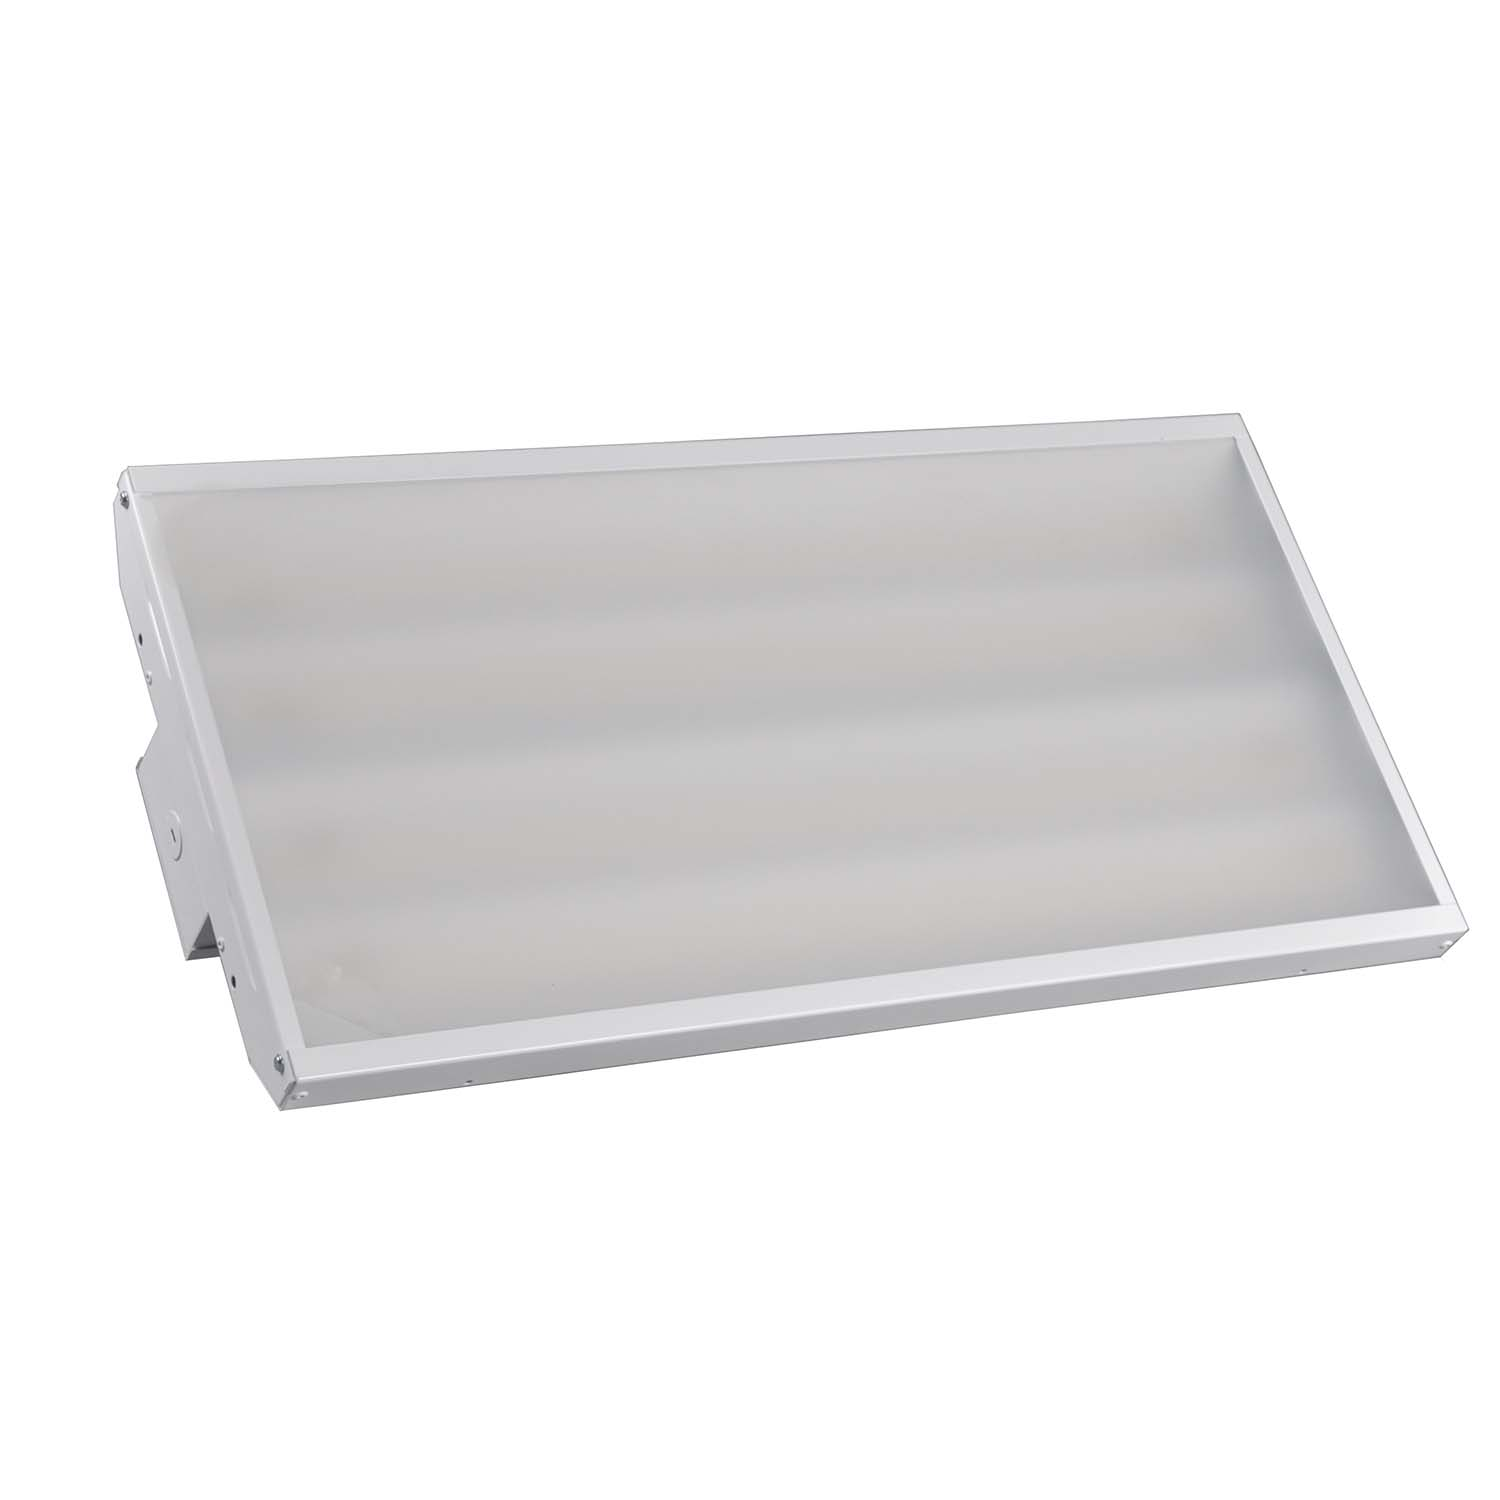 LHB1/111/850/UNV/LED2 99649 LINEAR LED HIGH BAY 120-277V, 111W, 5000K, 0-10V DIMMING, SERIES II